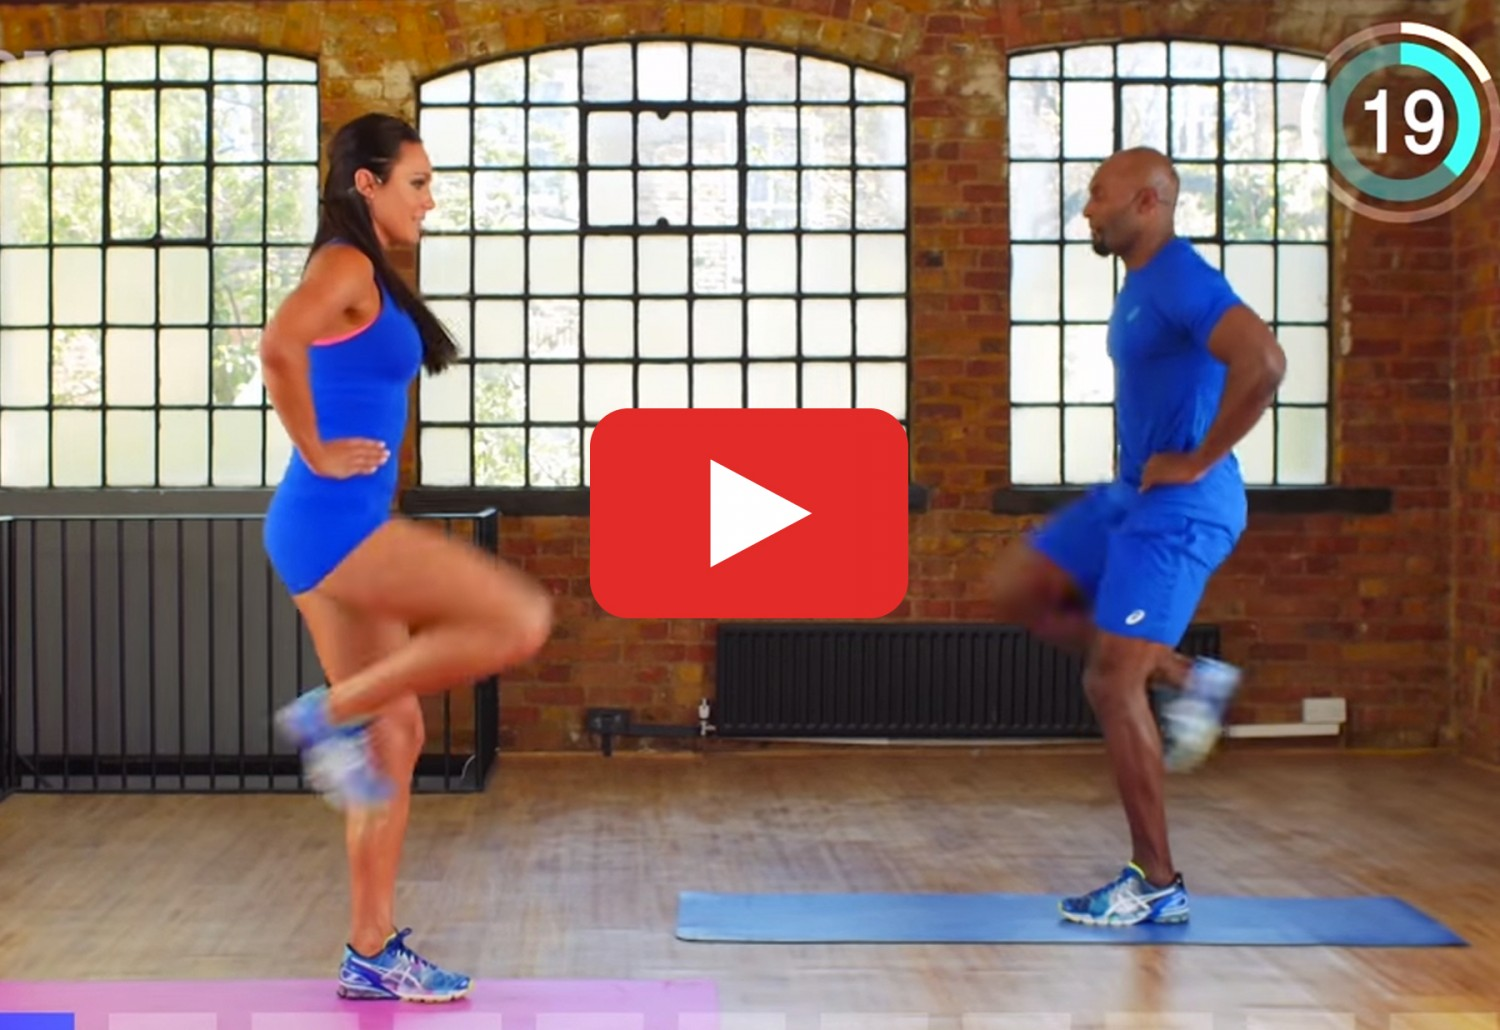 HIIT Workout: The 7-Minute Total-Body Plan